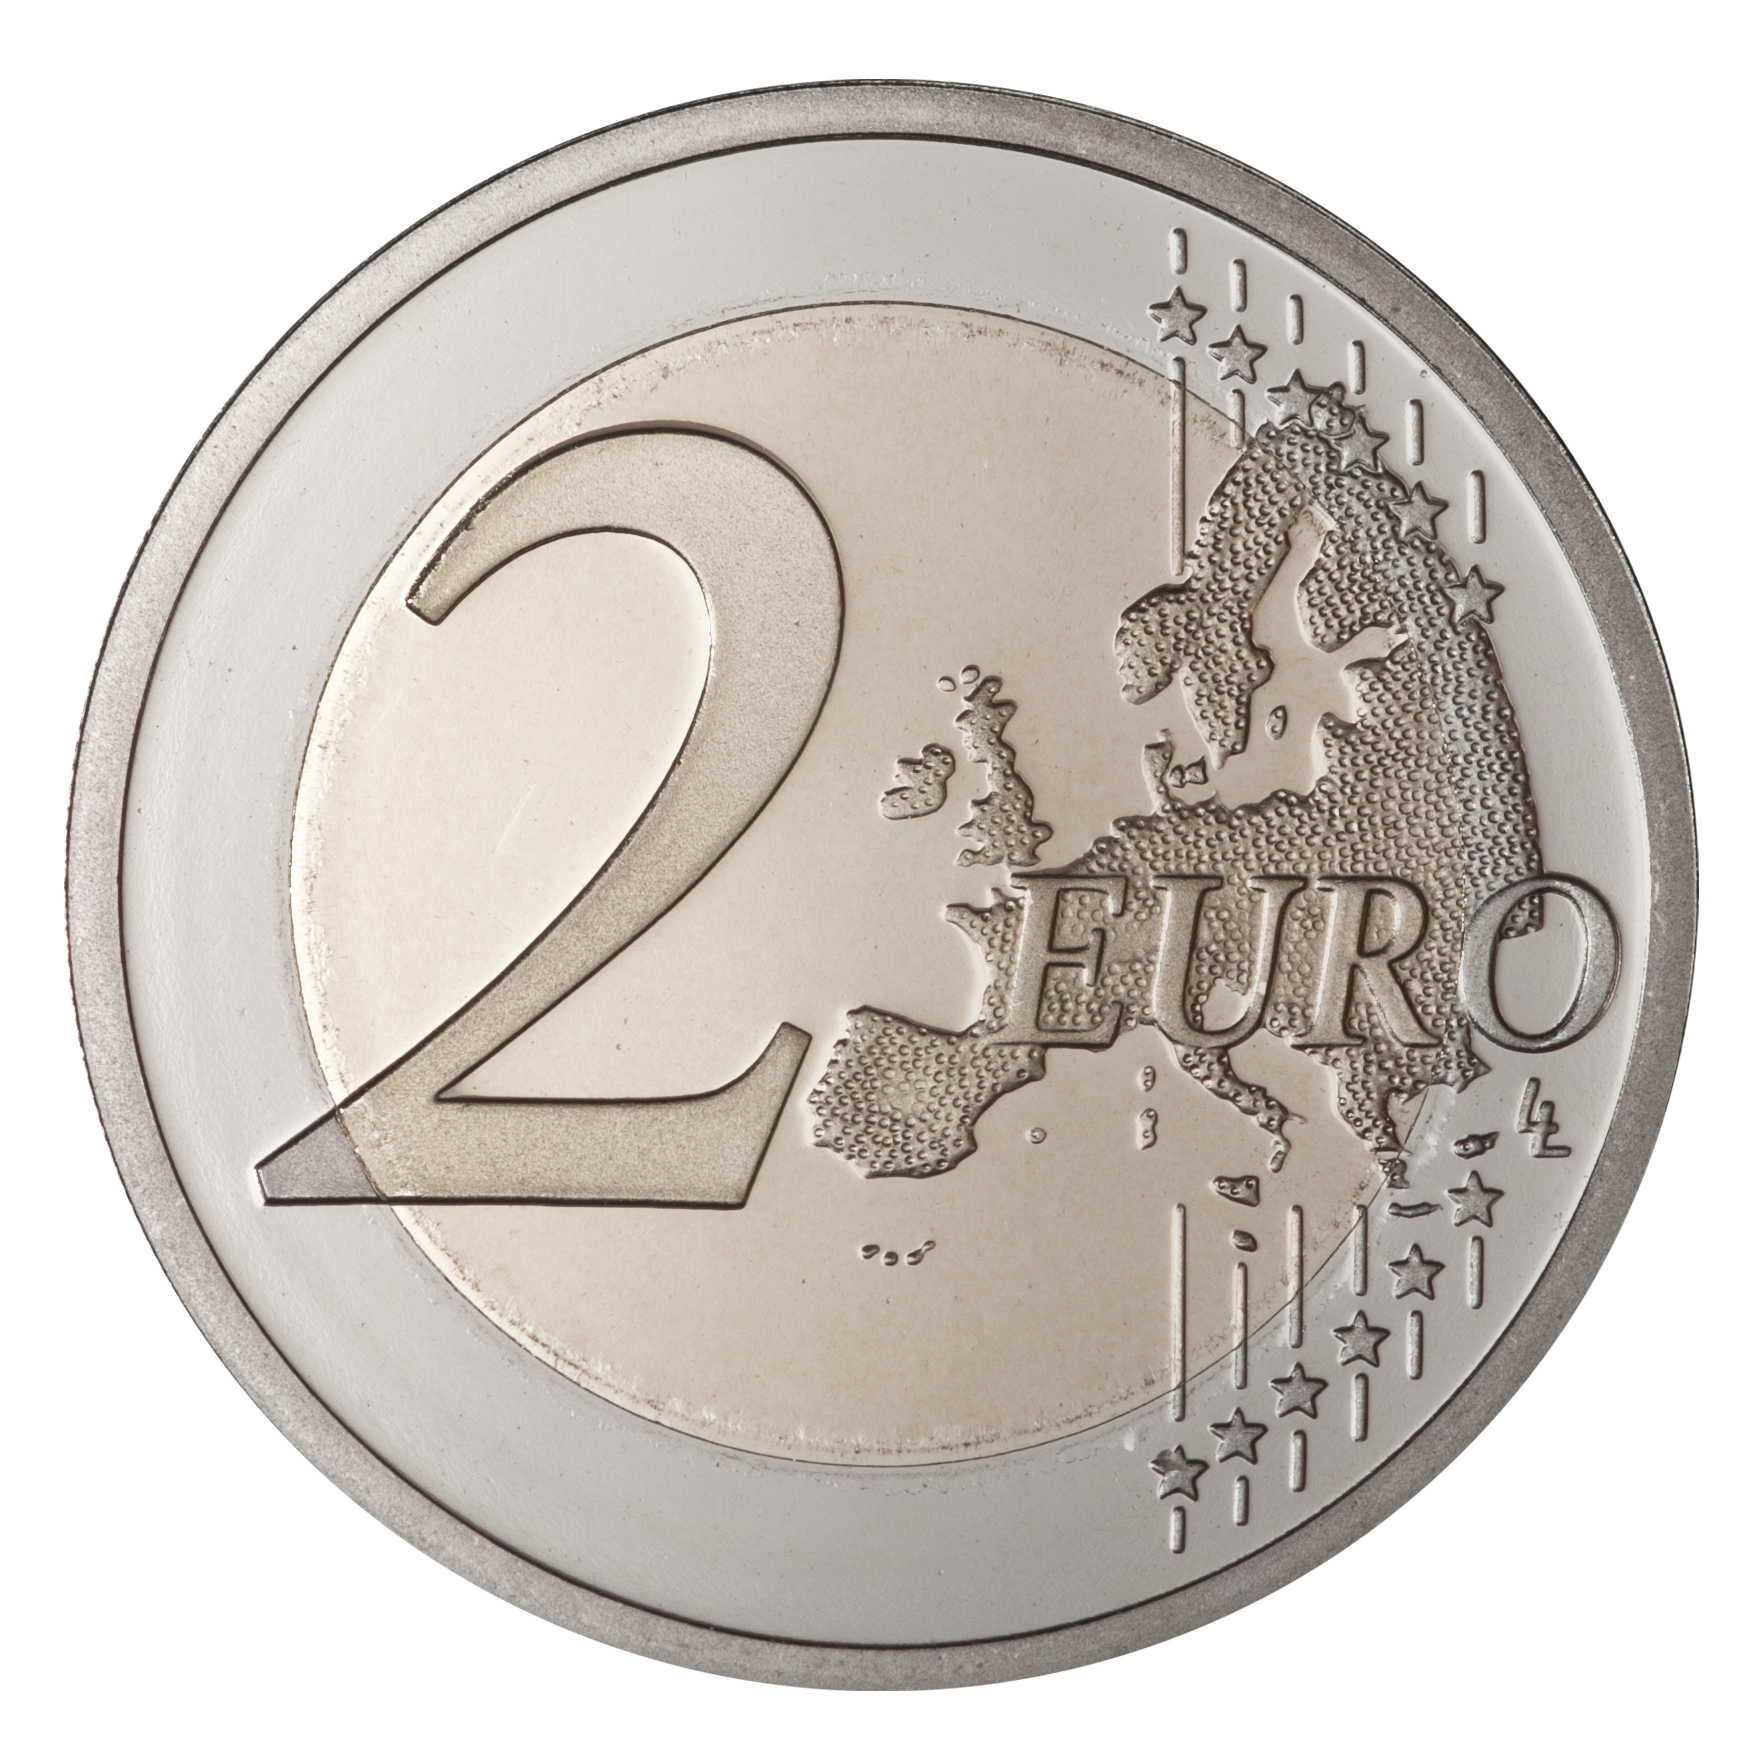 Coin 2 euro PNG image - Coin HD PNG - PNG HD Coins